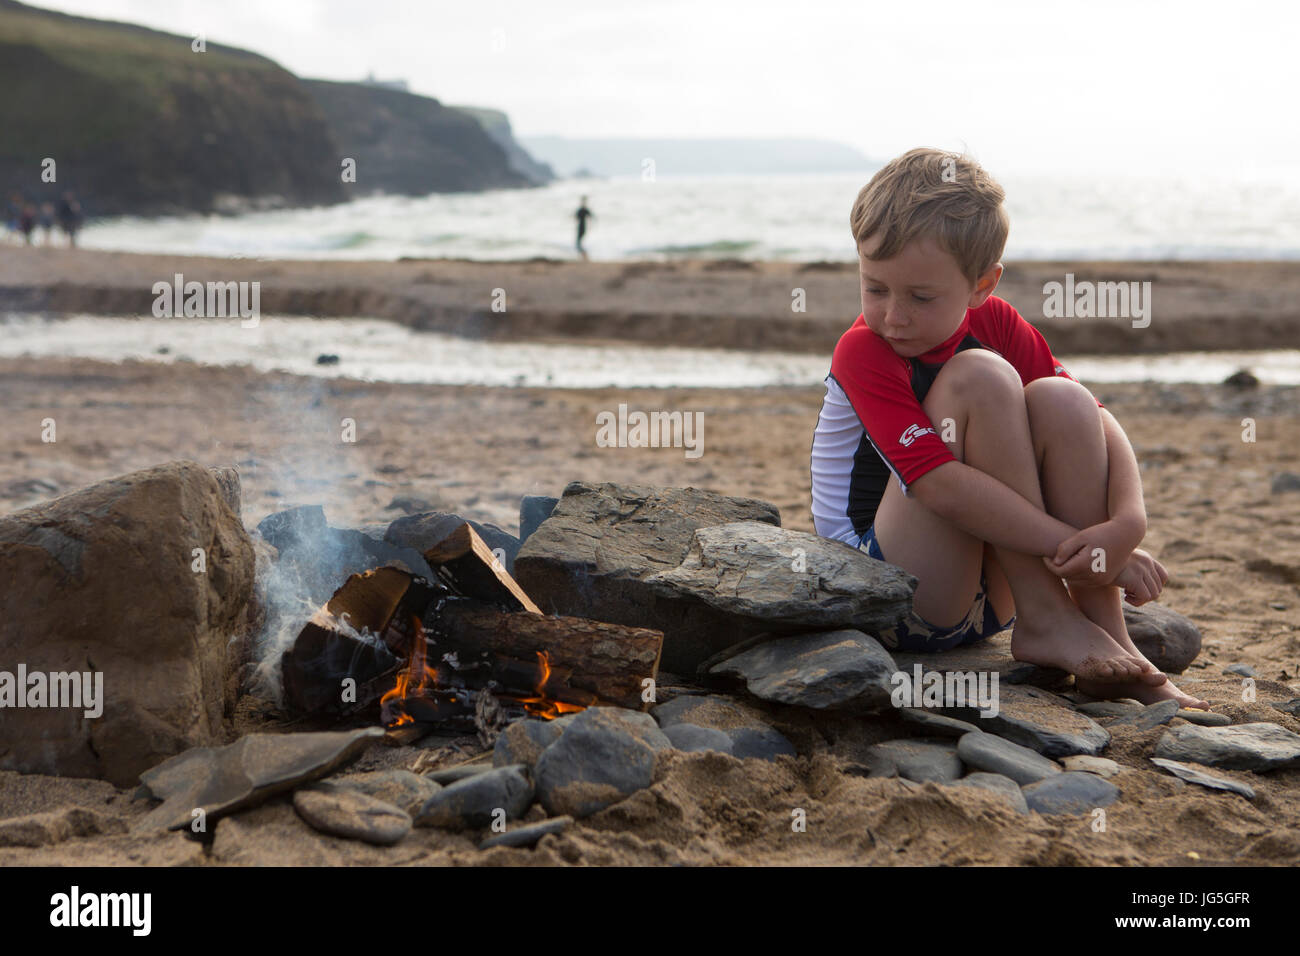 A boy watches over the beach fire on holiday, Cornwall, UK - Stock Image